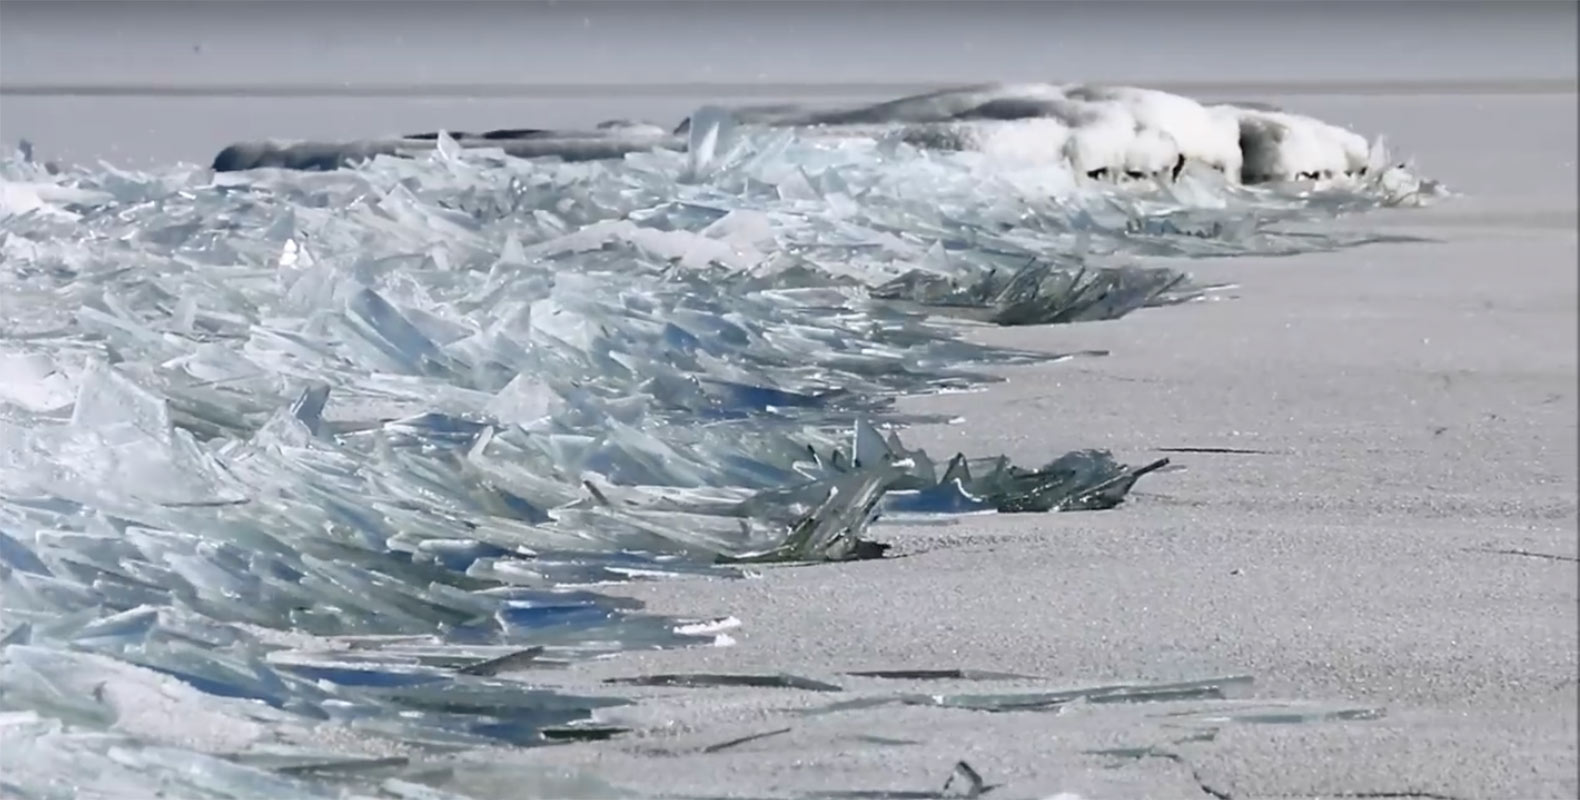 Watch frozen ice sheets from Lake Superior float ashore like shards of glass